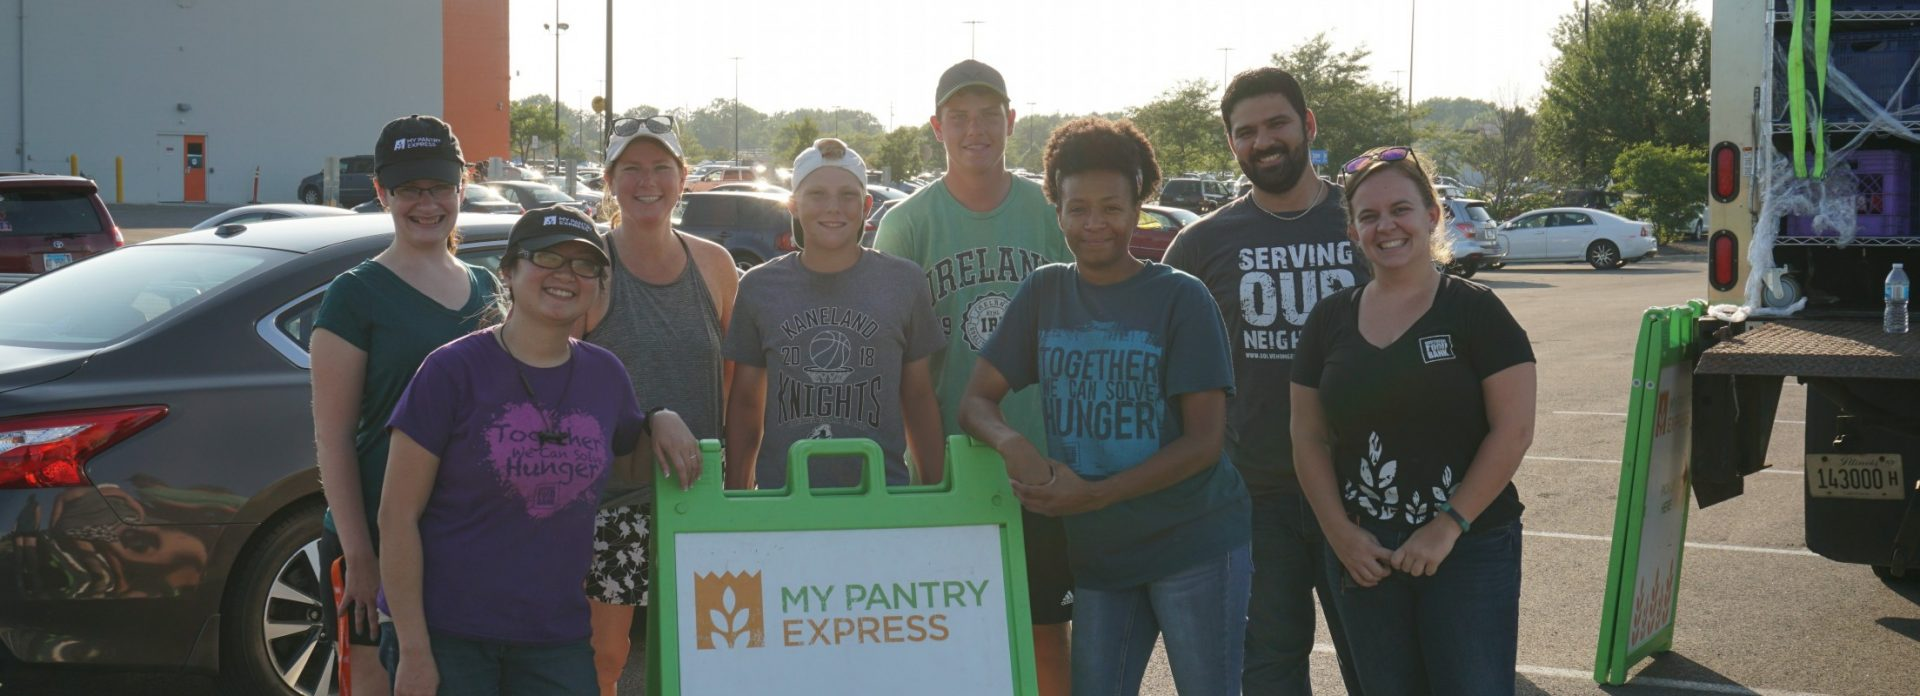 Volunteers and staff at a My Pantry Express distribution